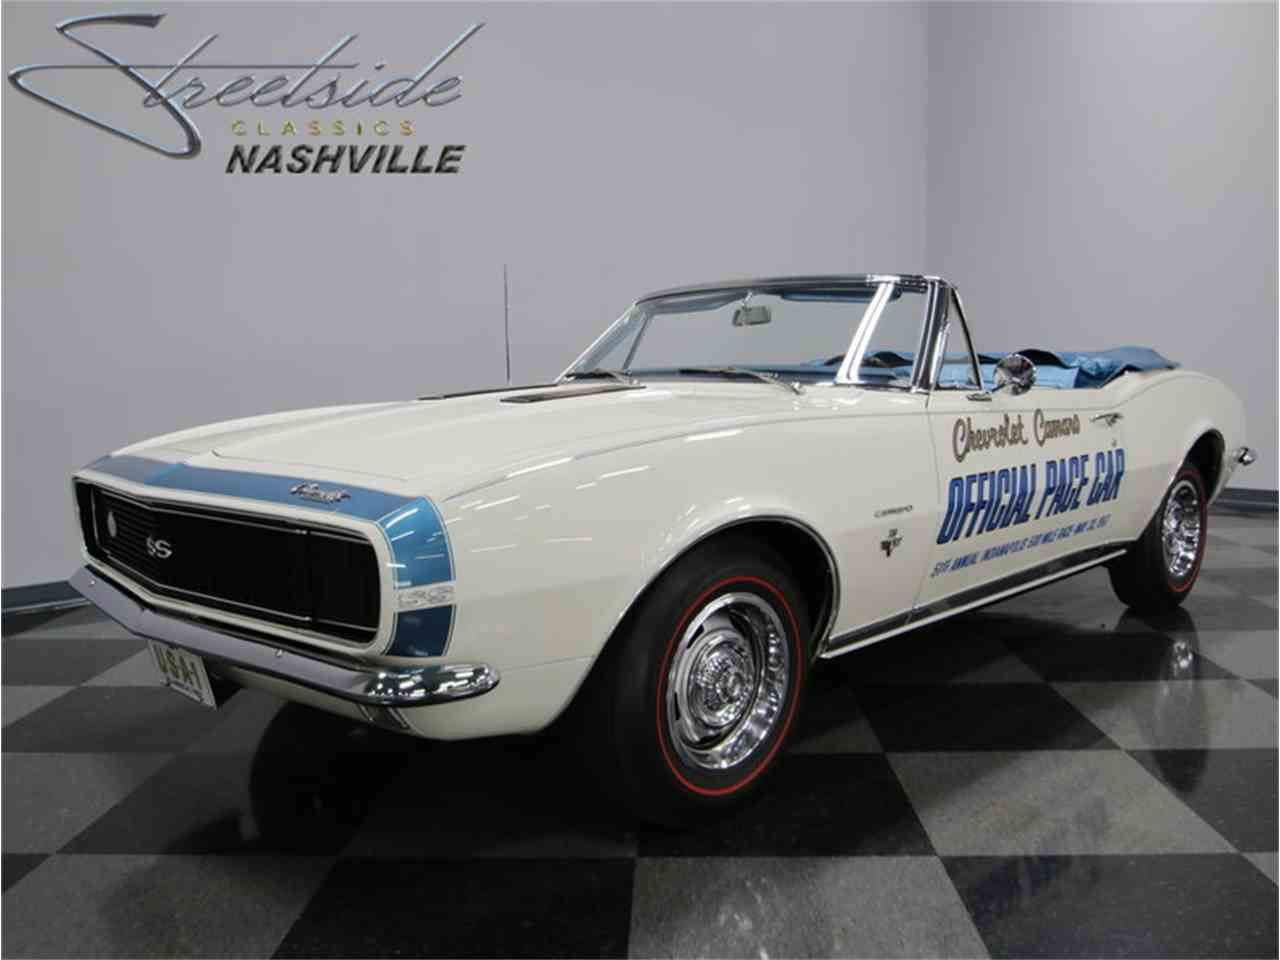 Large Picture of Classic '67 Camaro Indianapolis 500 Pace Car located in Lavergne Tennessee - $99,995.00 - JI5M